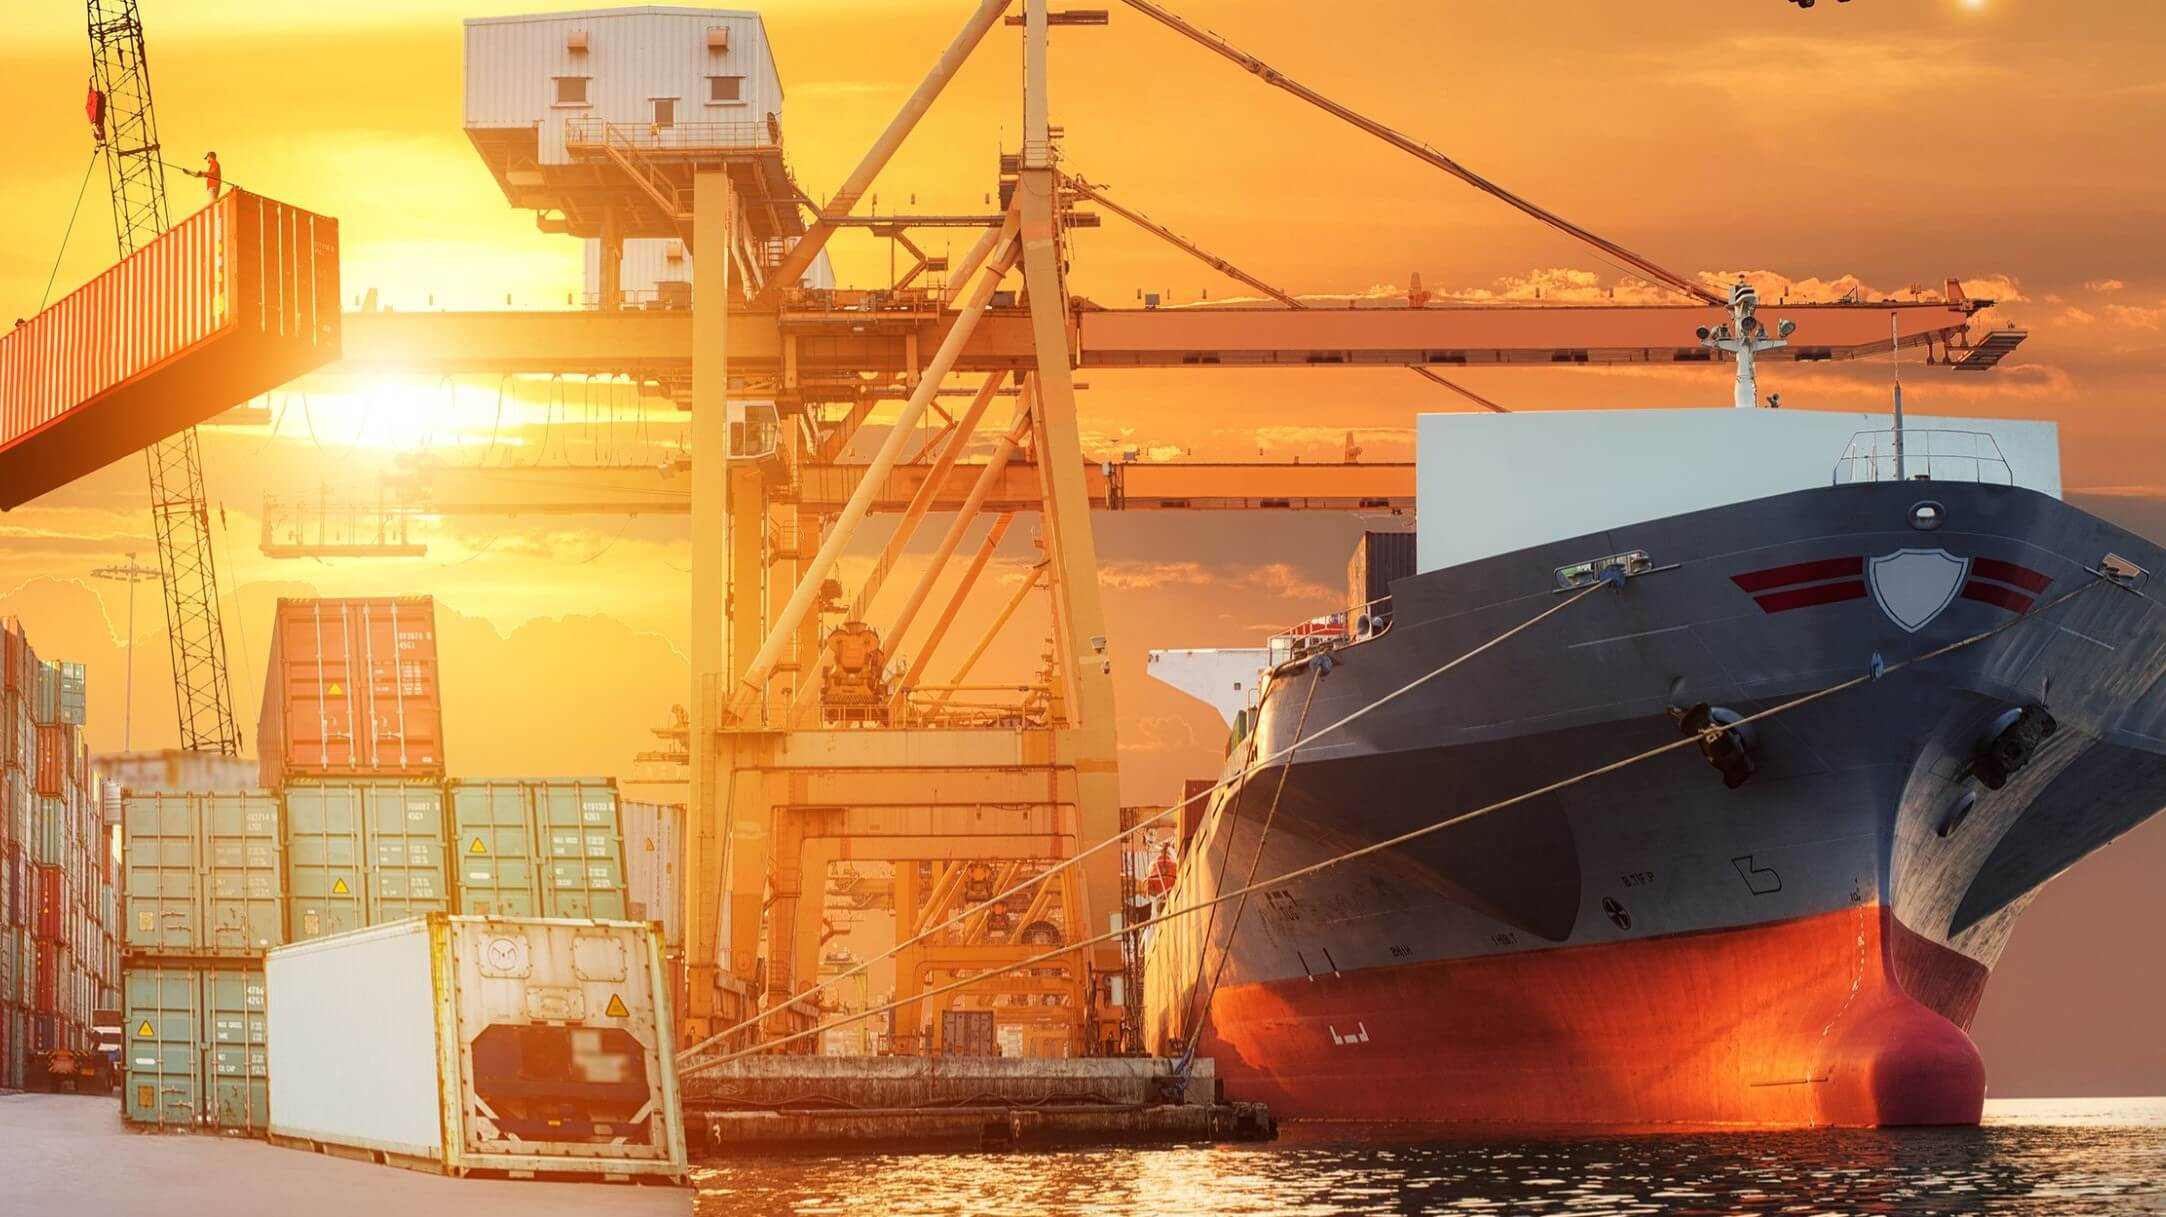 End-to-end IT Outsourcing Deal for a leading Port Agencies and Maritime Services Company